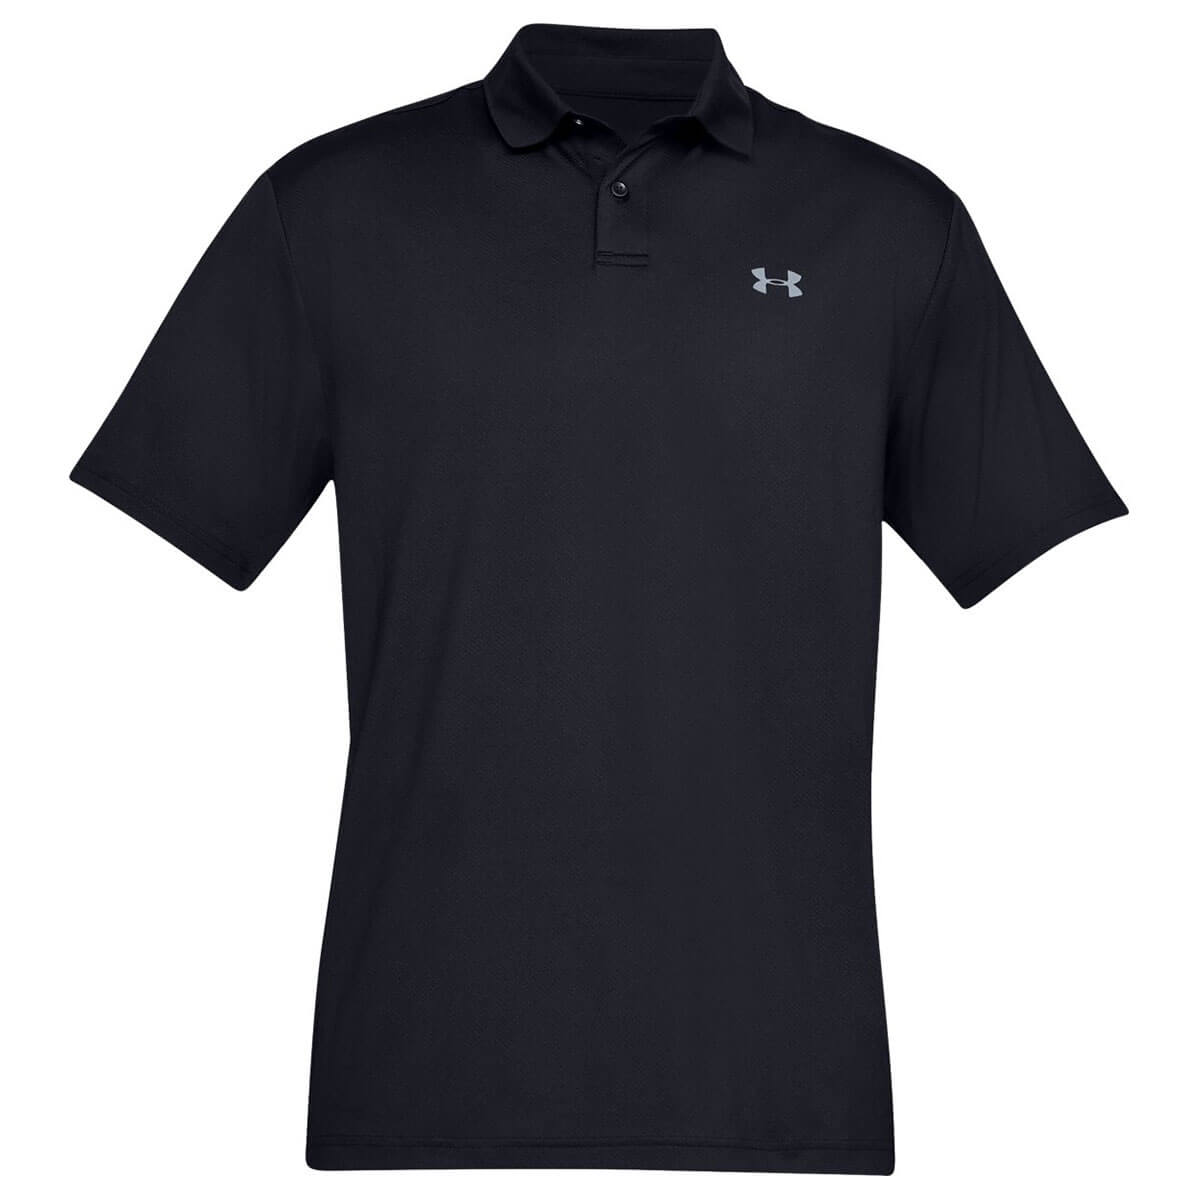 Under-Armour-Mens-2019-Performance-2-0-Stretch-Durable-Smooth-Golf-Polo-Shirt thumbnail 12